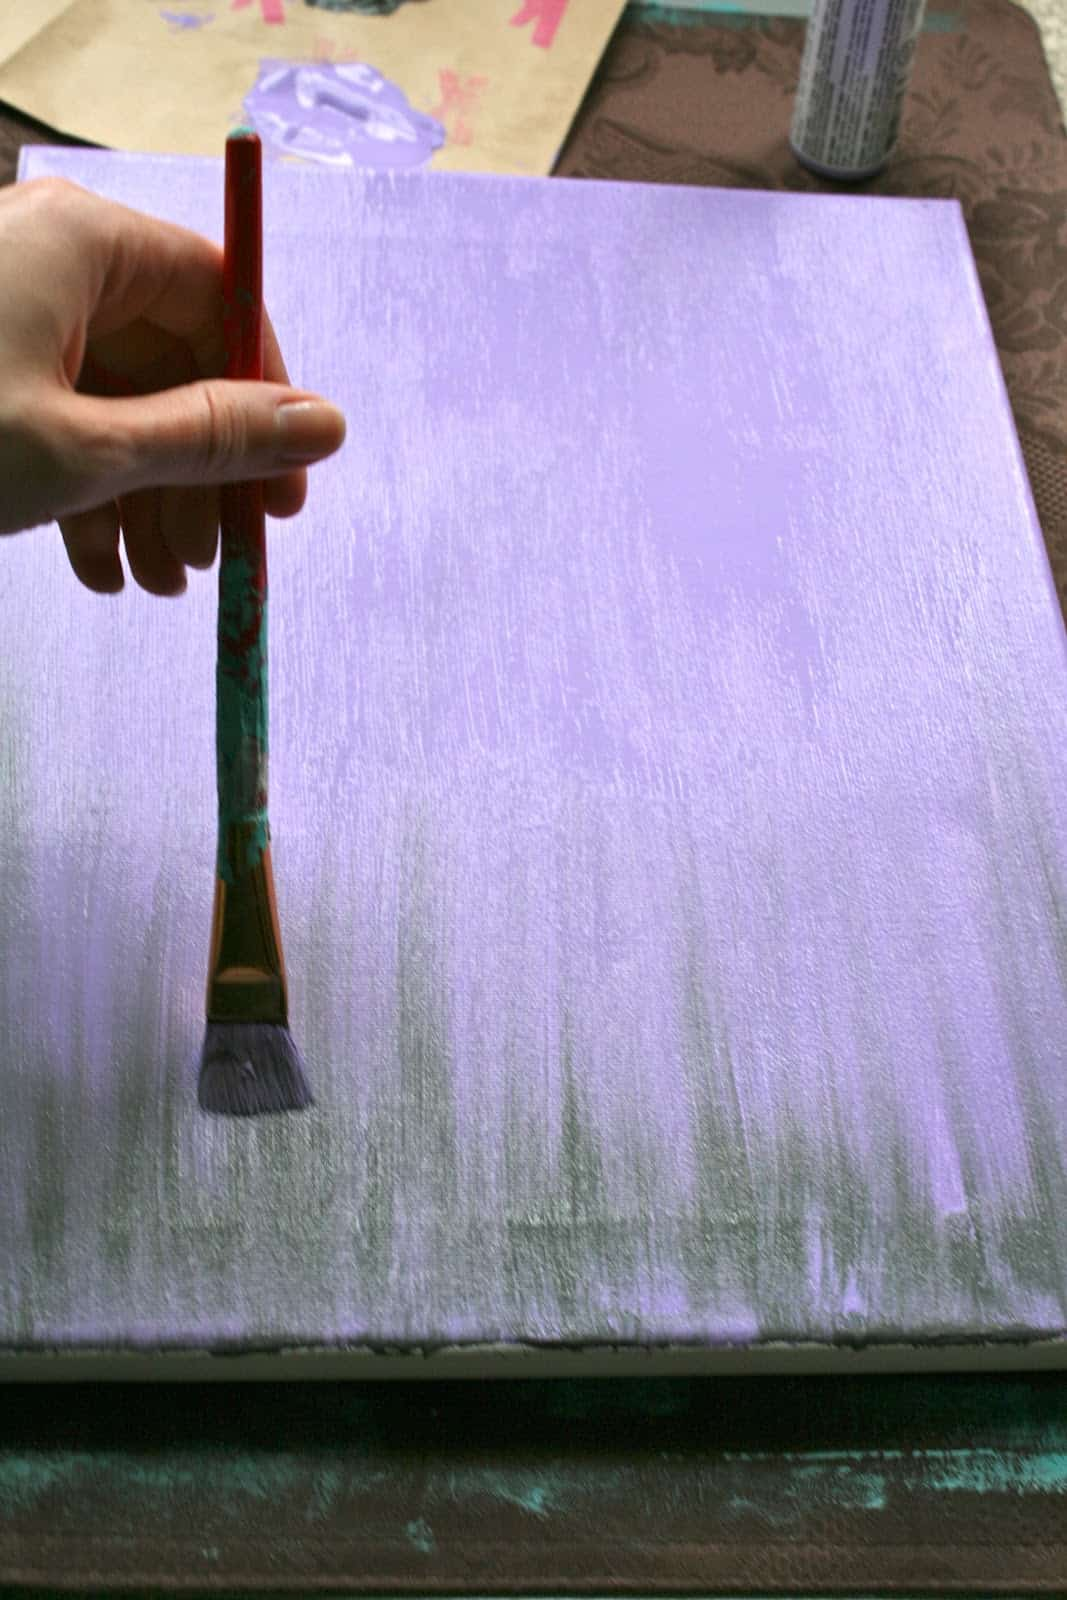 10. LEARN DIFFERENT TECHNIQUES OF APPLYING A COLORED GROUND